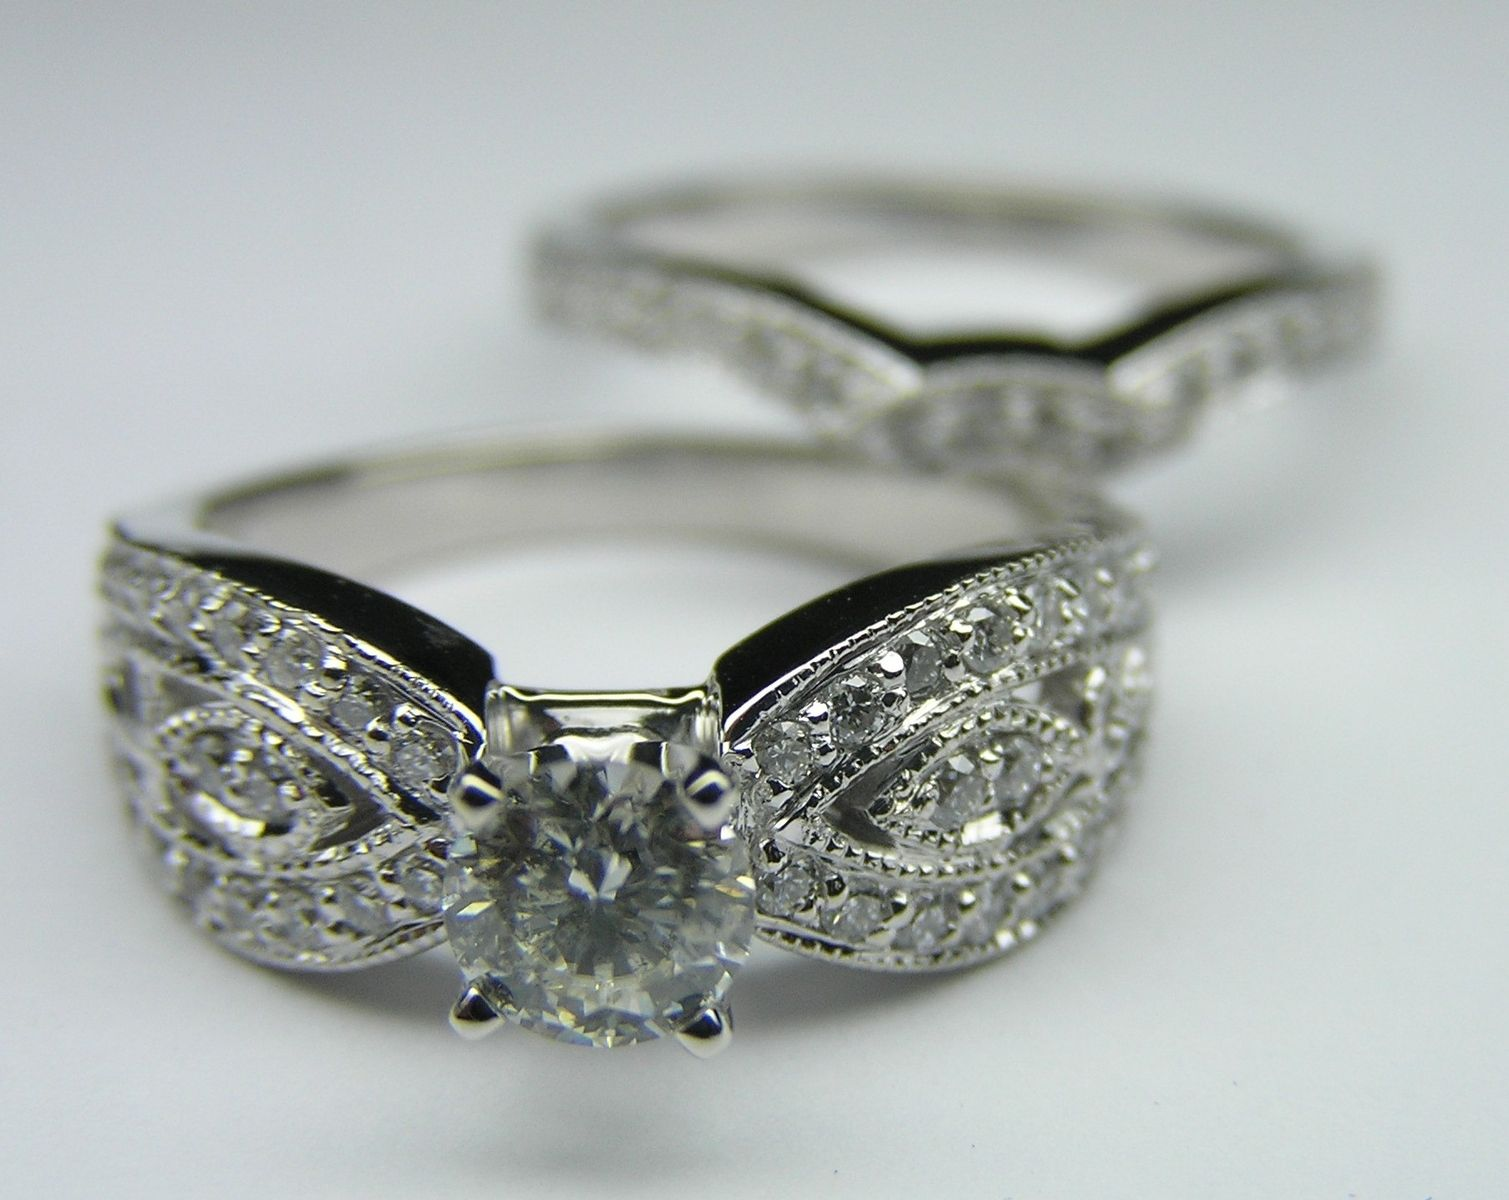 hand crafted round diamond butterfly engagement ring matching wedding band bridal set in 14k white gold with initials incorporated into the design - Butterfly Wedding Ring